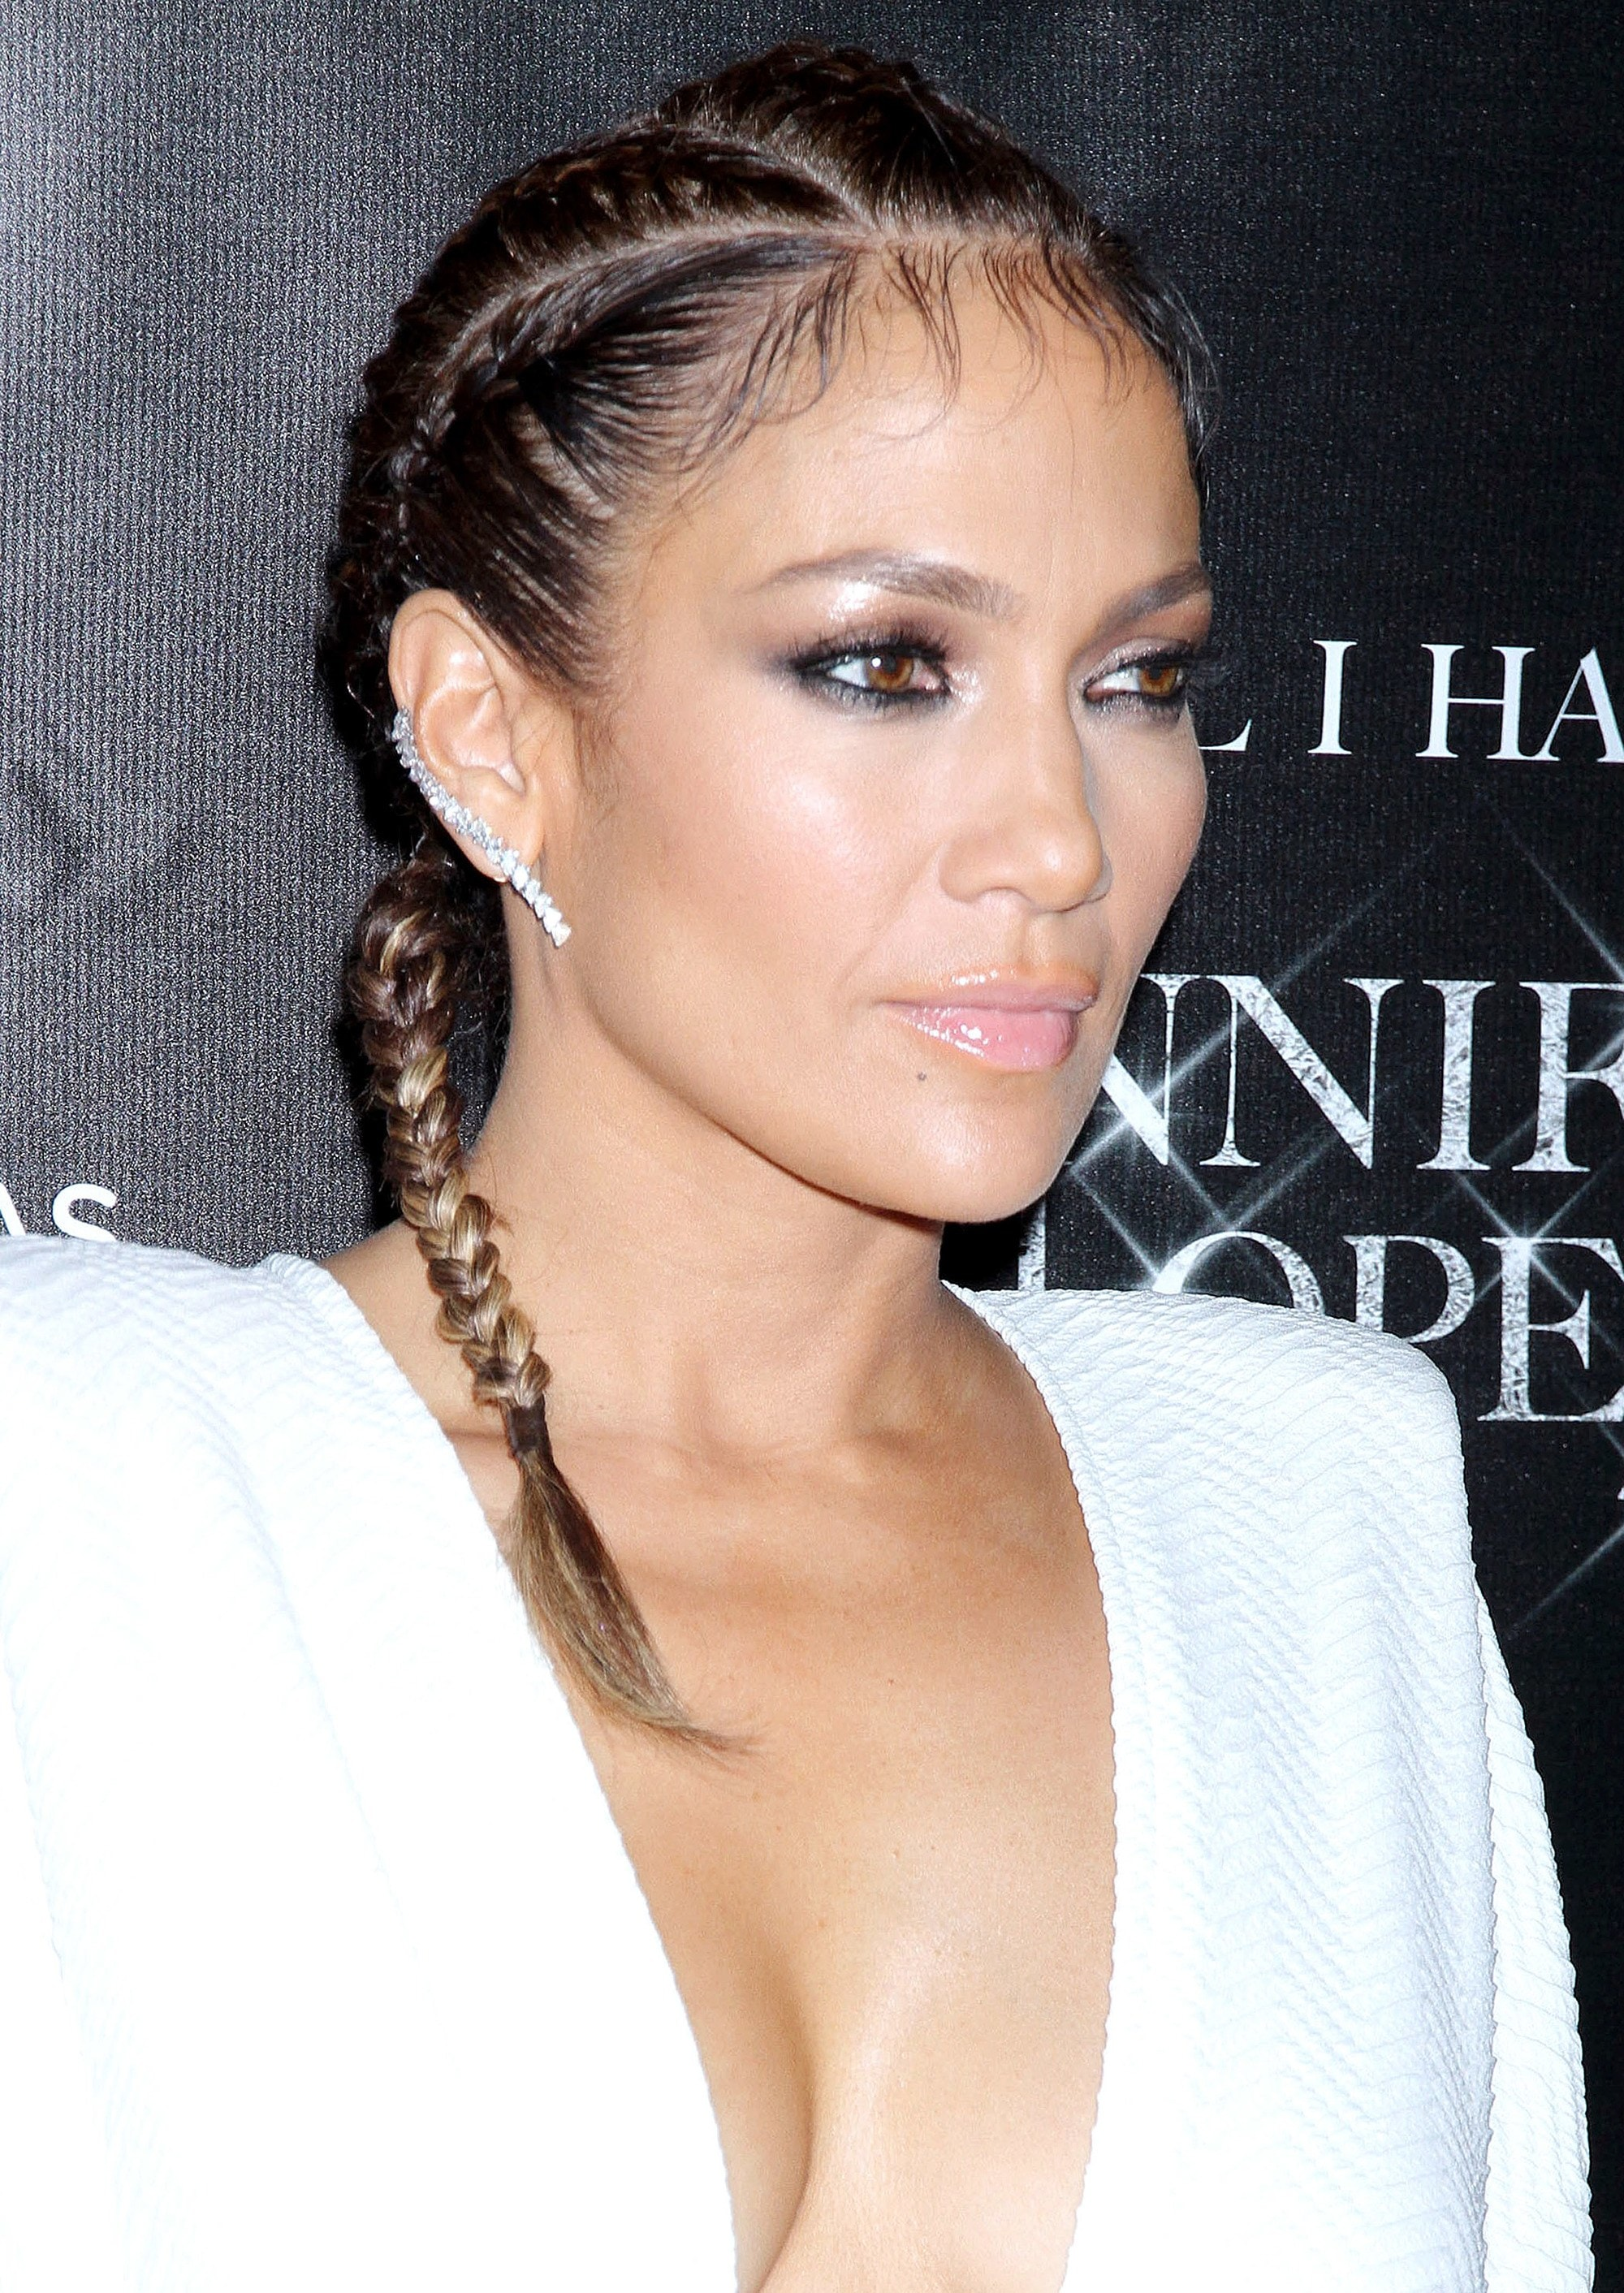 Jennifer Lopez - 2015 - Mane moments - cornrow braids